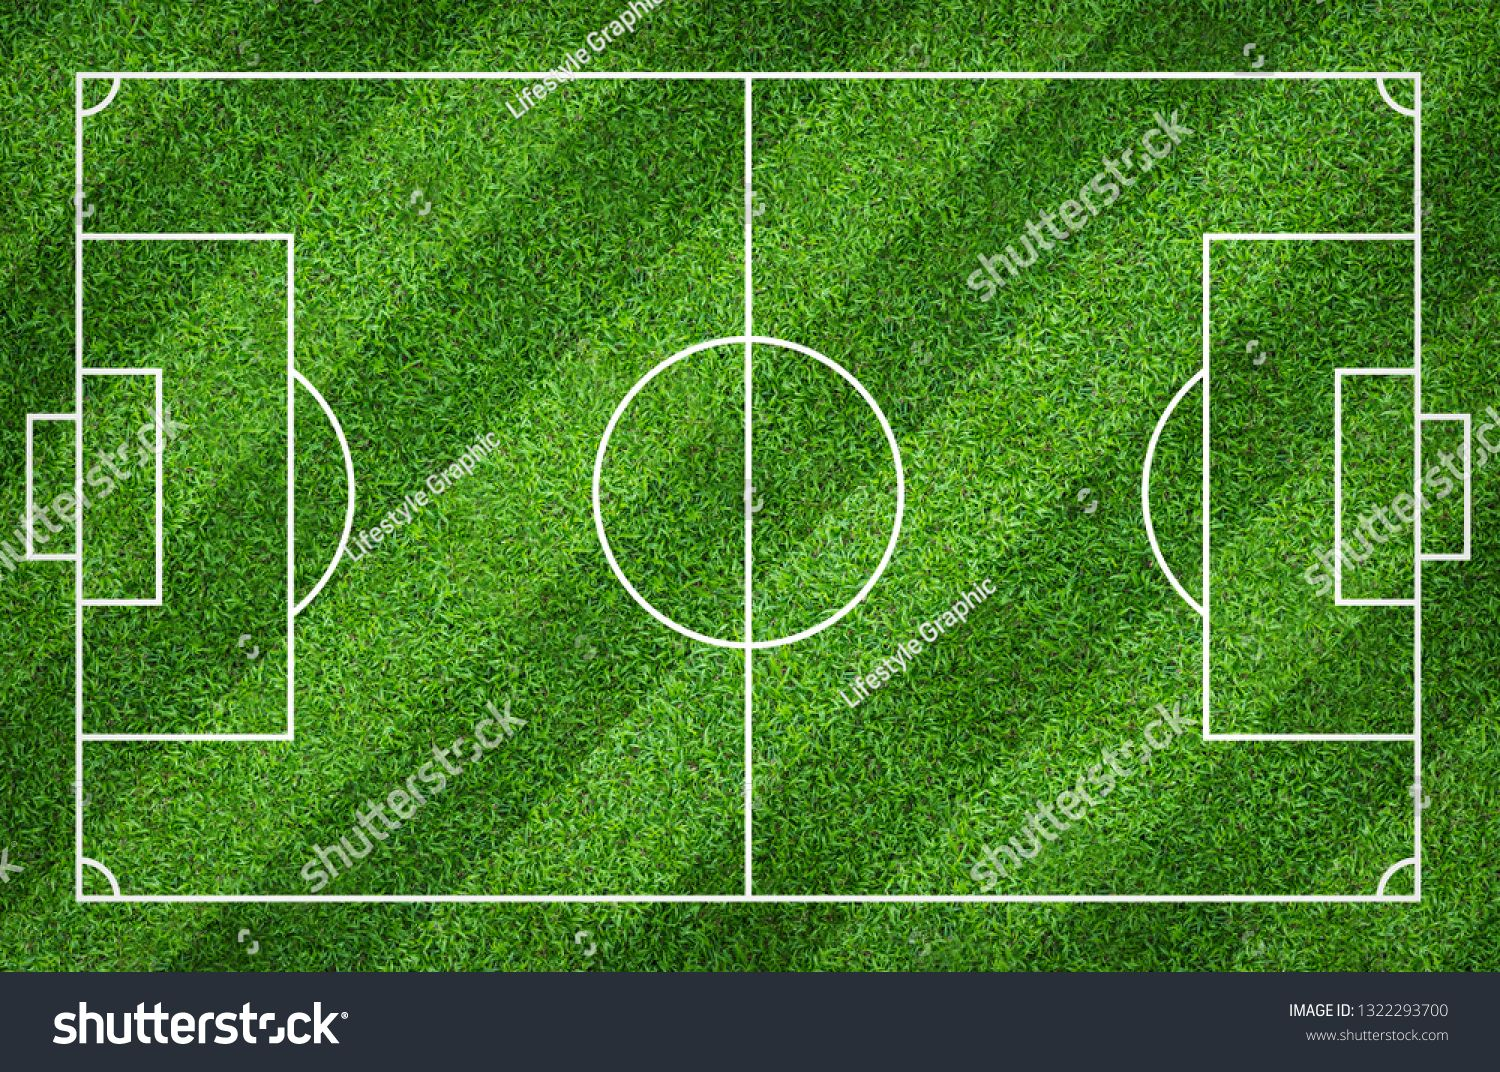 Football Field Or Soccer Field For Background Green Lawn Court For Create Sport Game Ad Spon Background Green Soccer Soccer Field Football Field Soccer